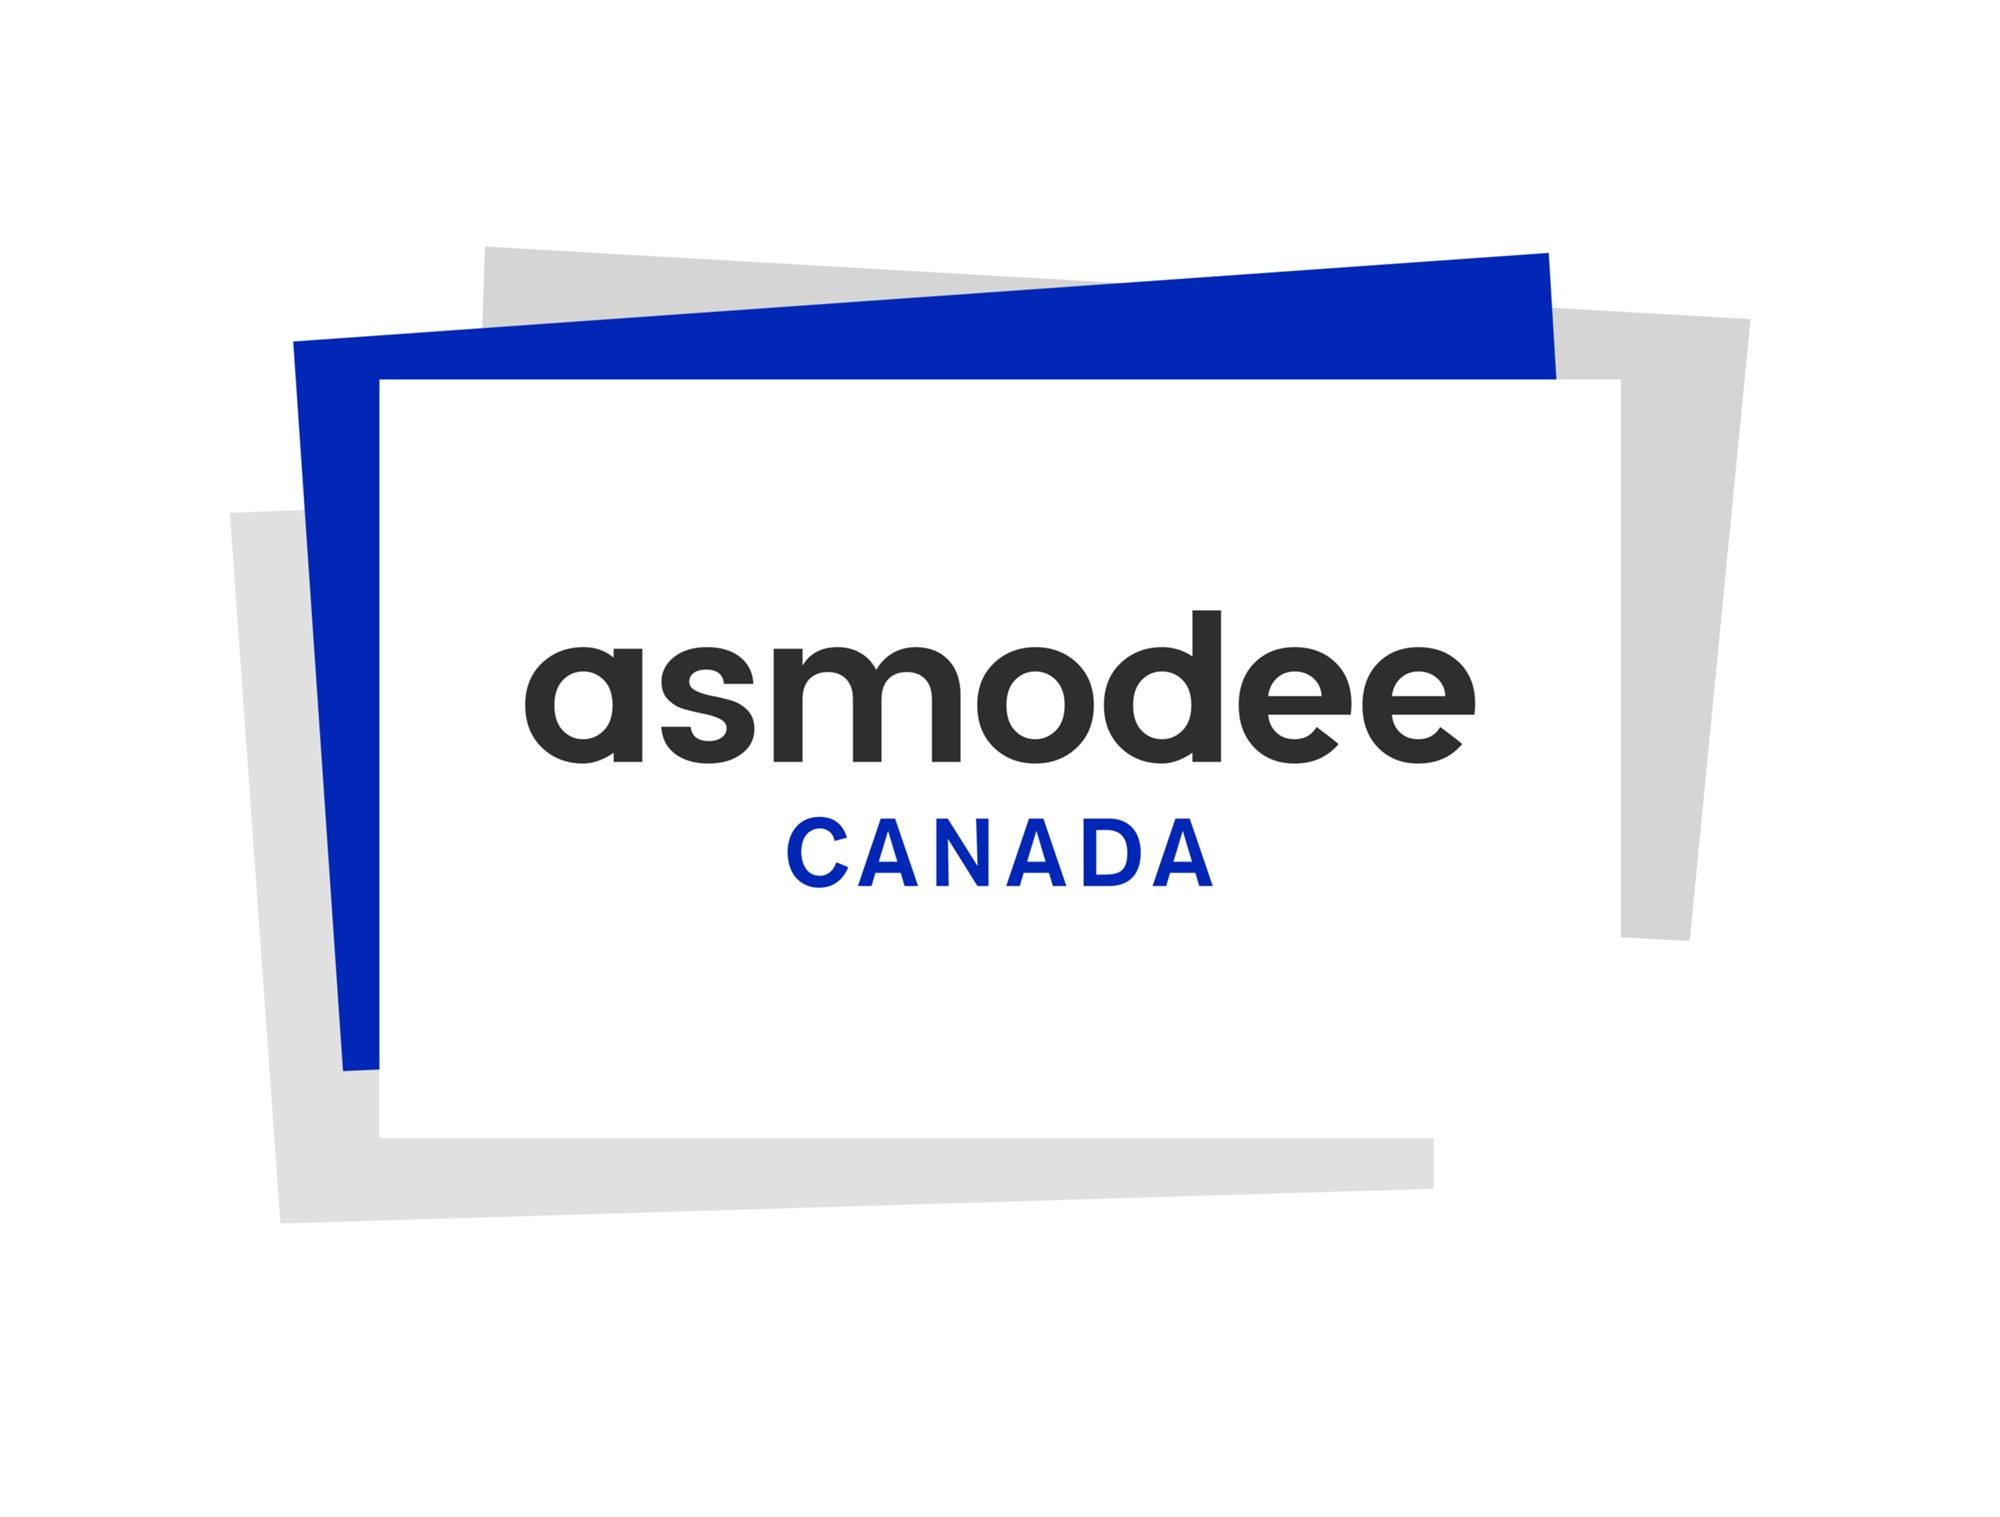 Logo for Asmodee Canada